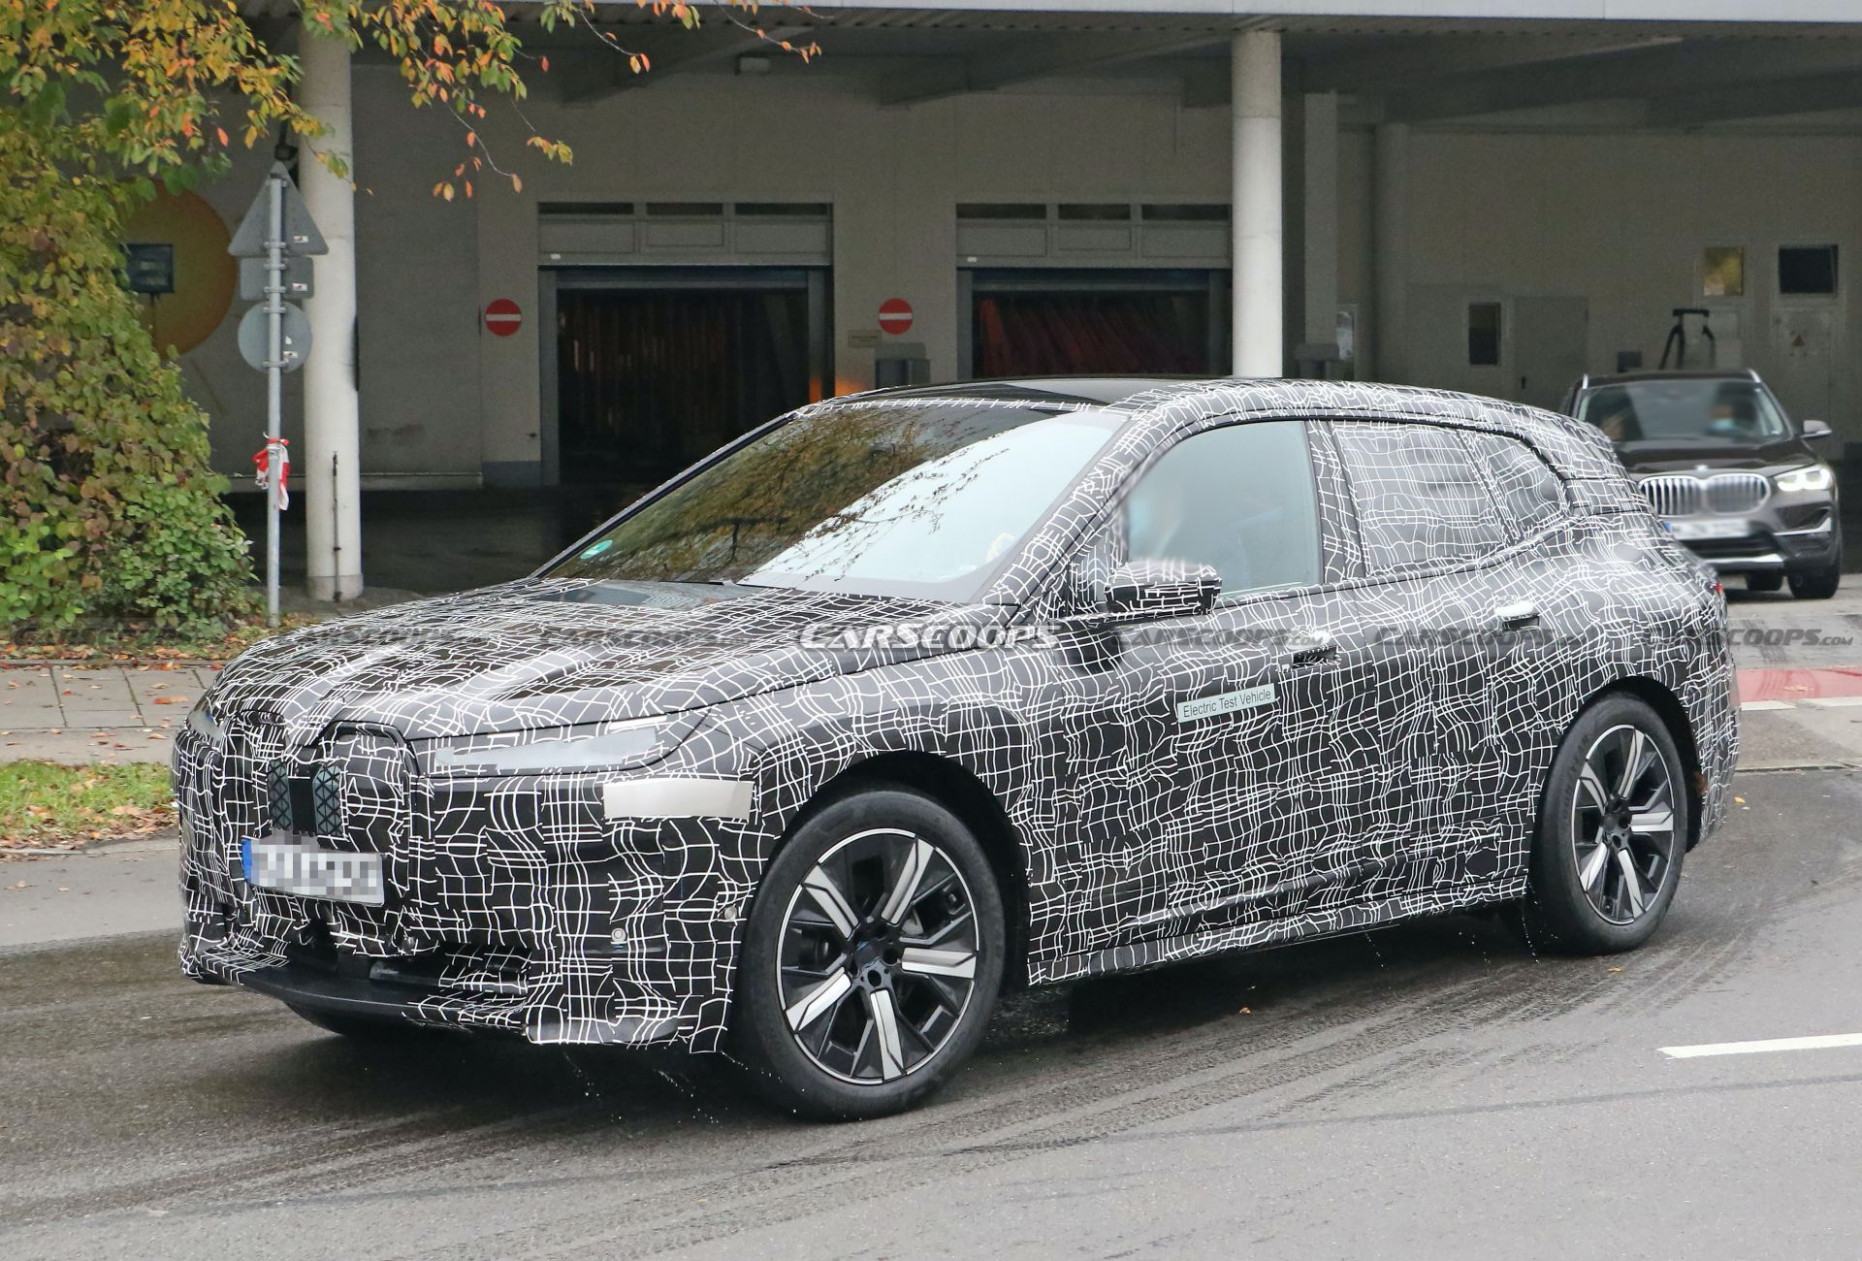 Style BMW Electric Vehicles 2022